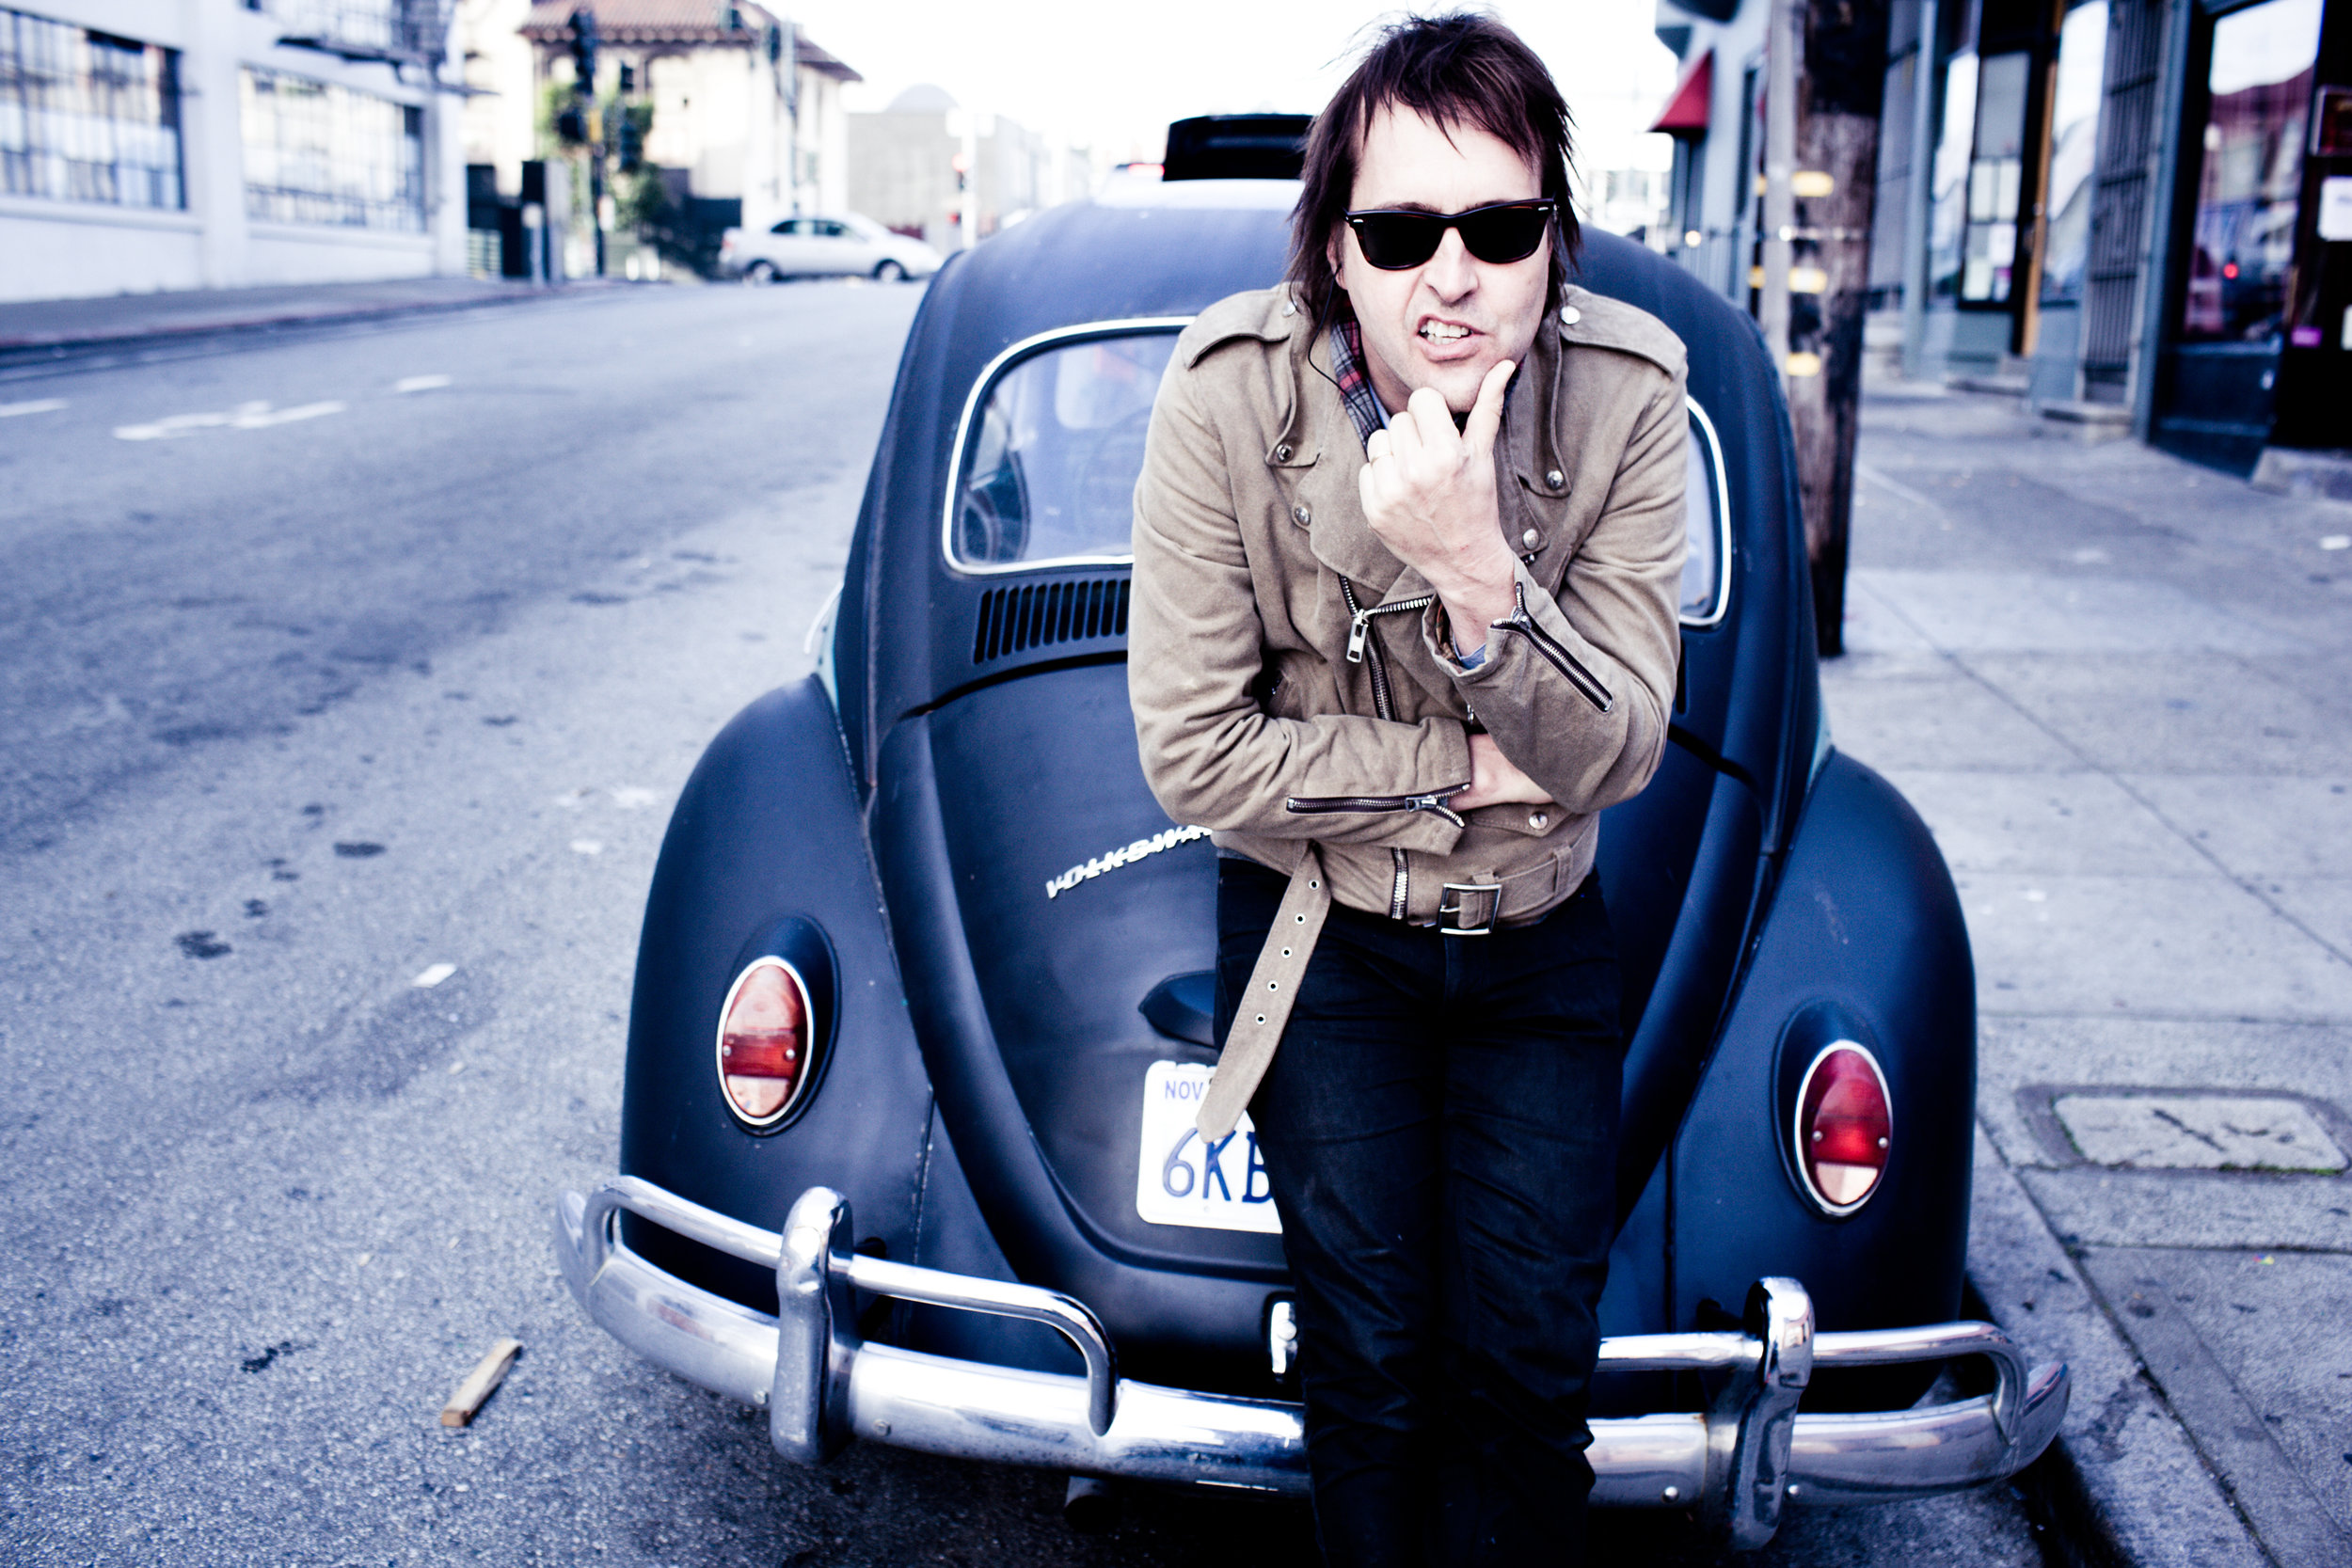 Chuck Prophet and Mission Express